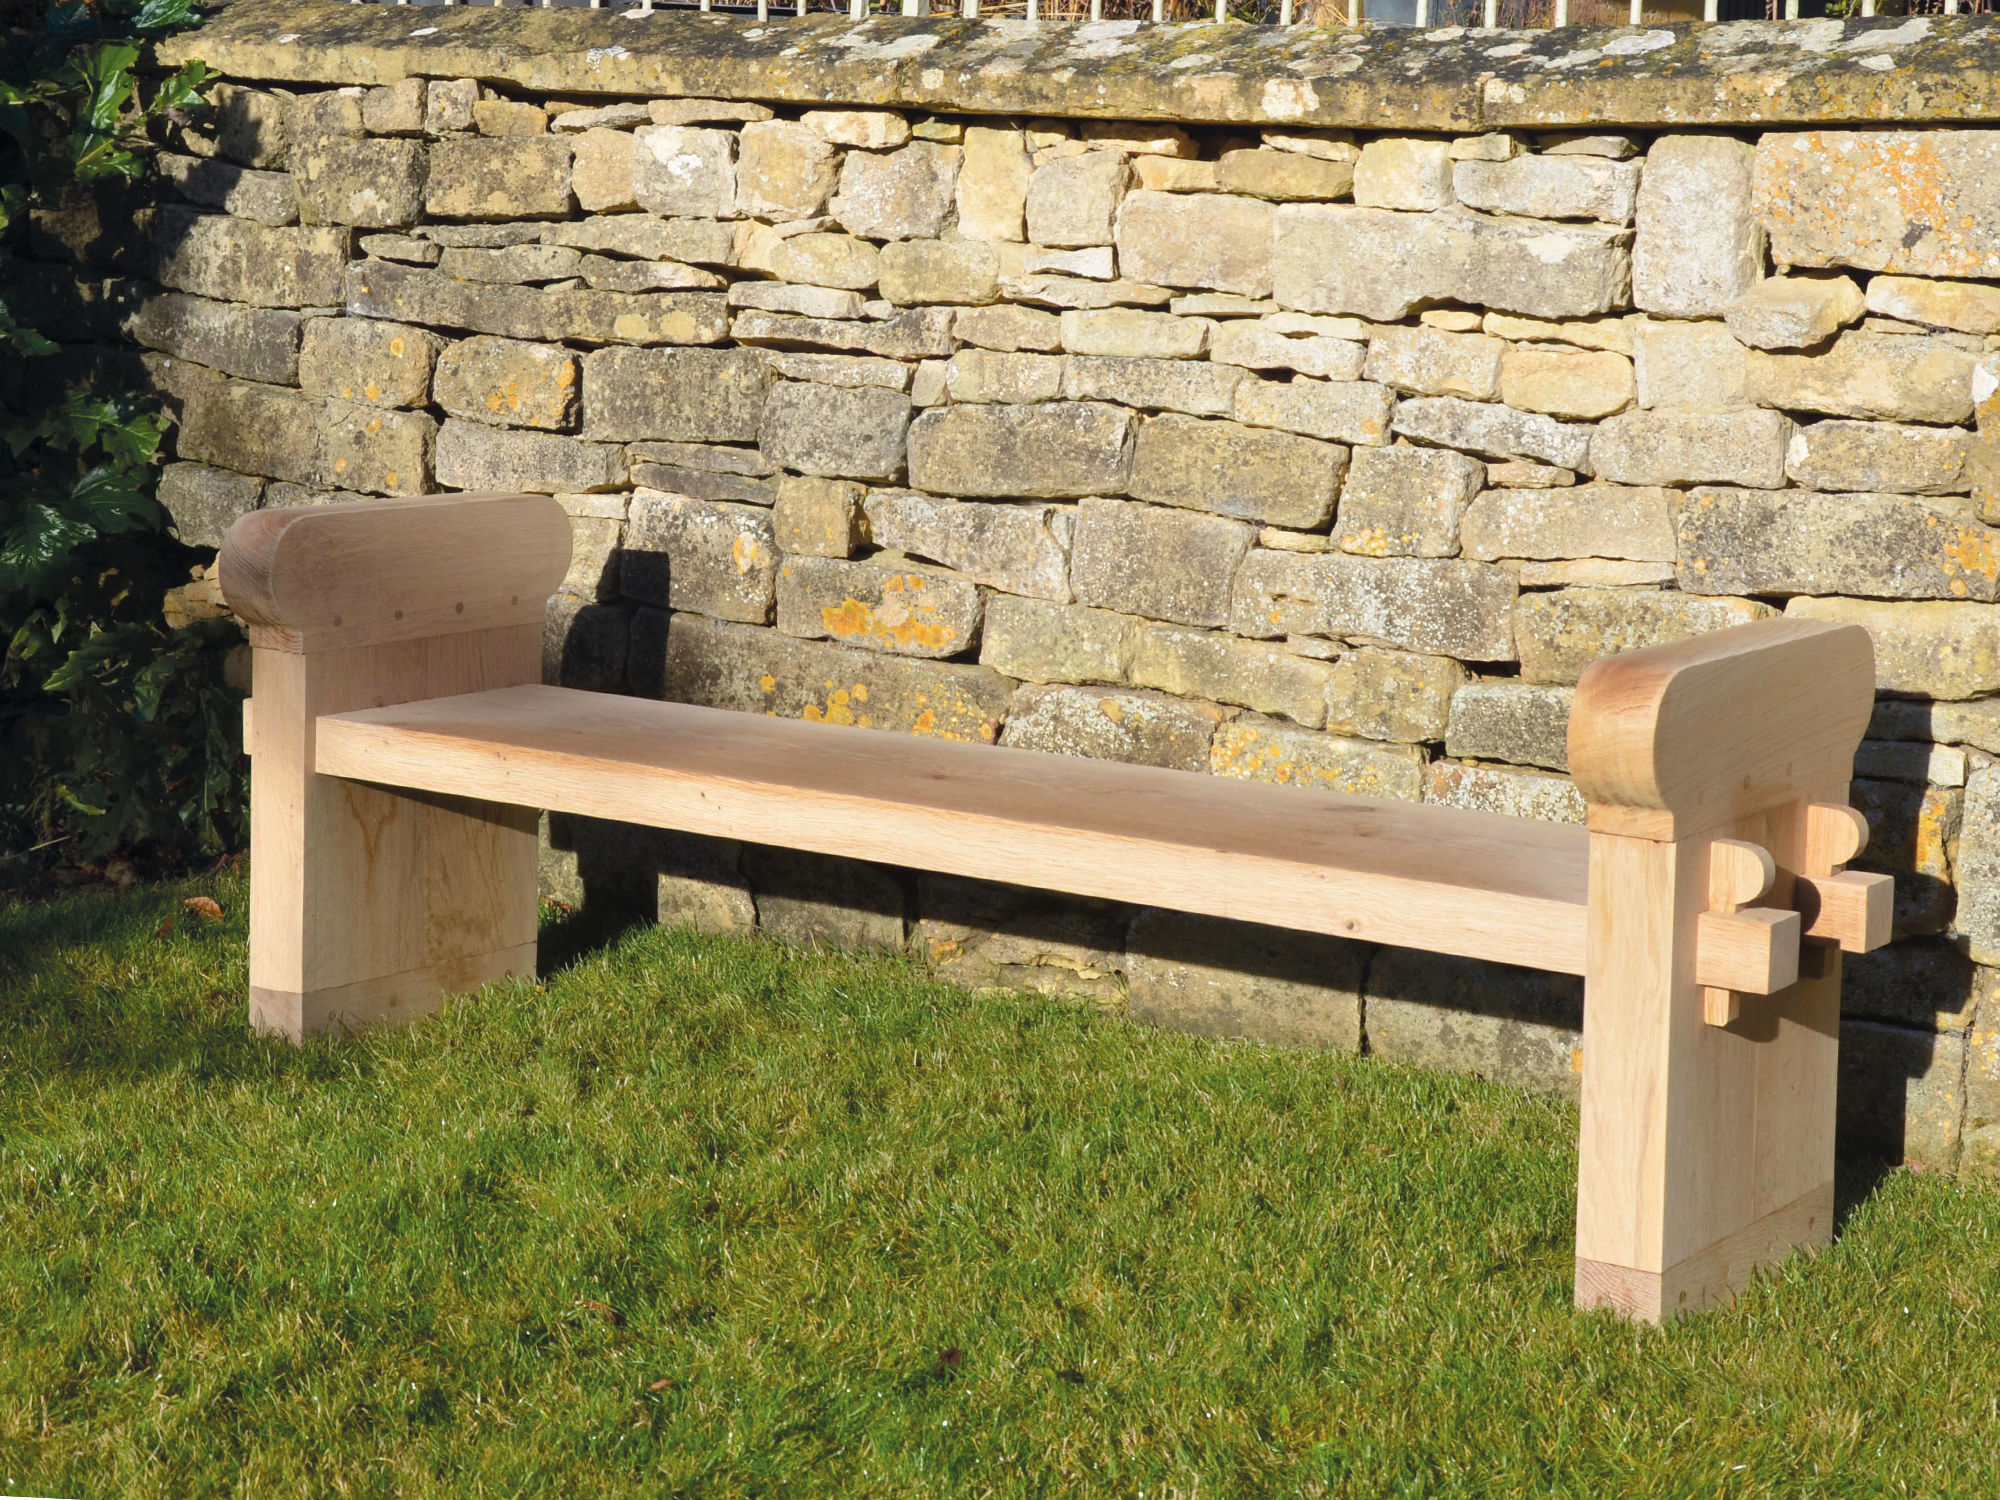 The Quercus Robur Garden Bench